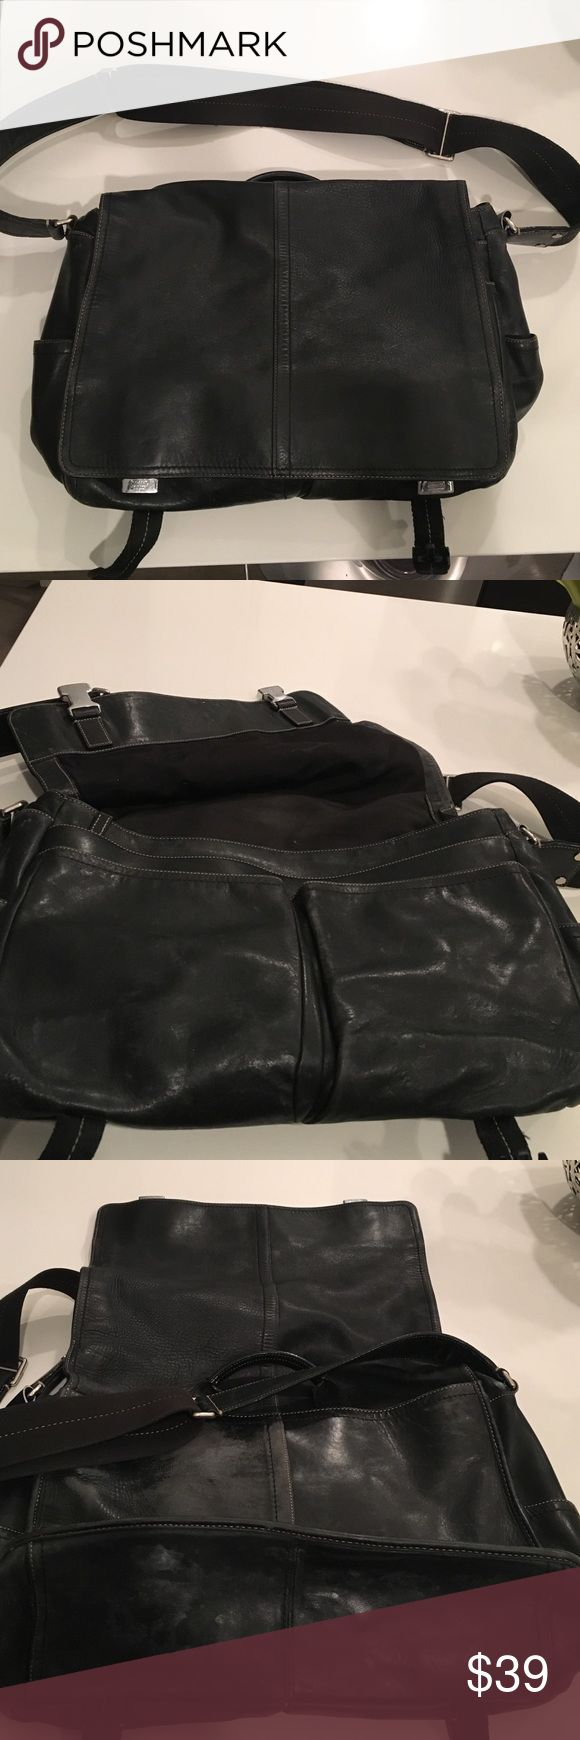 Coach messenger bag Men's large Coach Black leather messenger bag. My husband used this daily for work and shows signs of a lot of wear. Most wear is on back and bottom (picture 3) Can prob polish it ...never tried. Missing one clip seen in pic 4. Coach Bags Messenger Bags